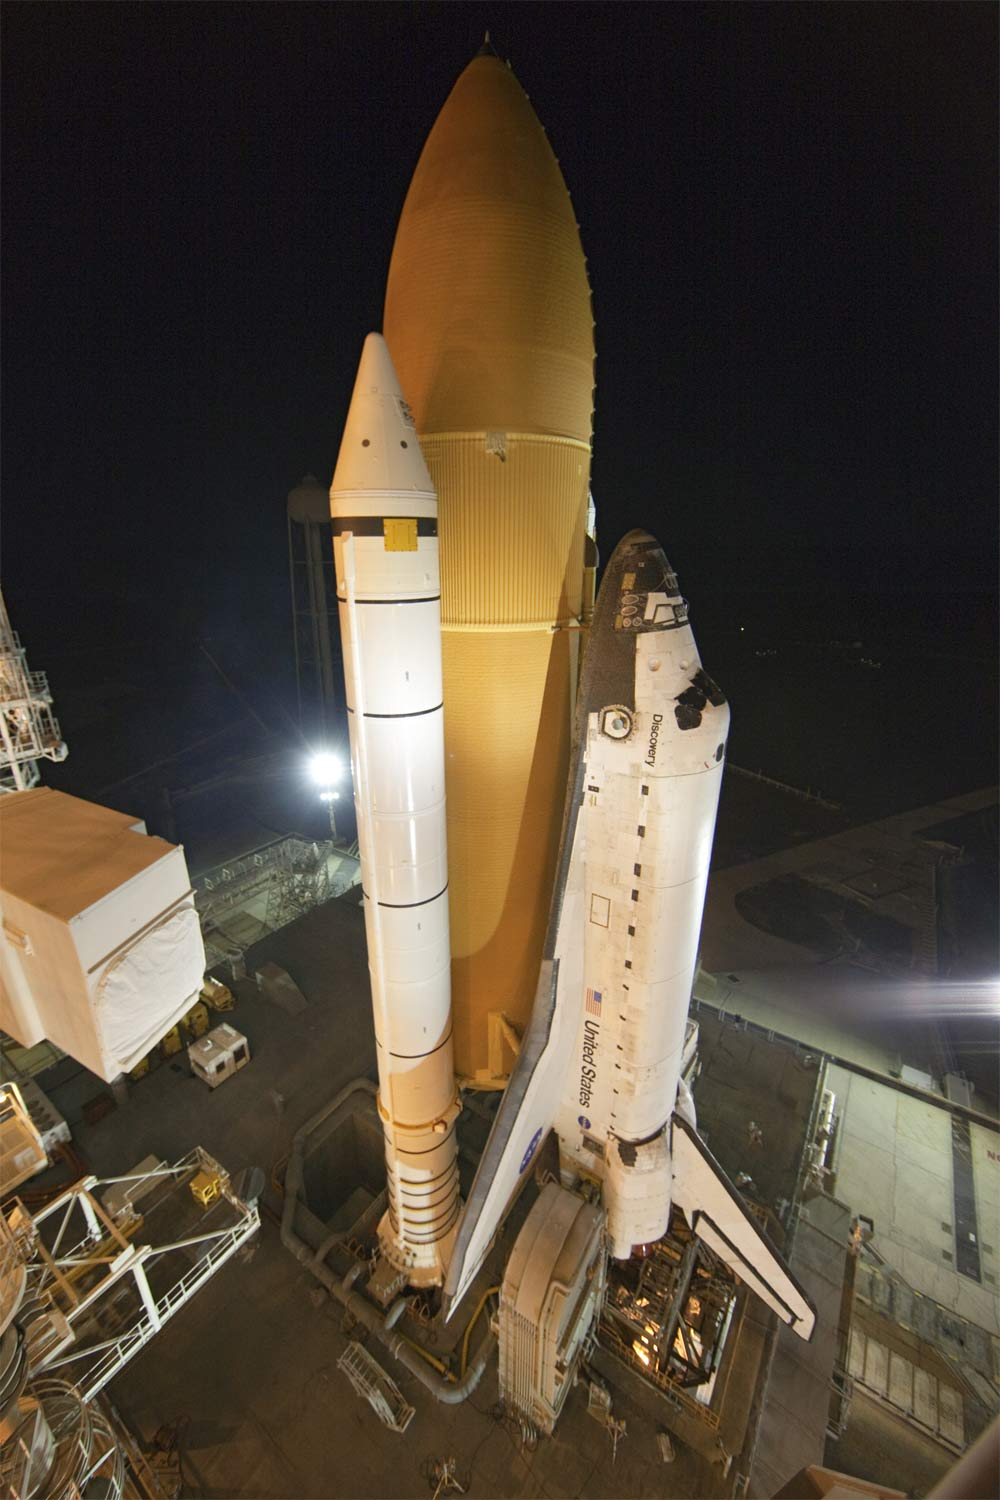 NASA: Last Space Shuttle Flight to Launch June 28